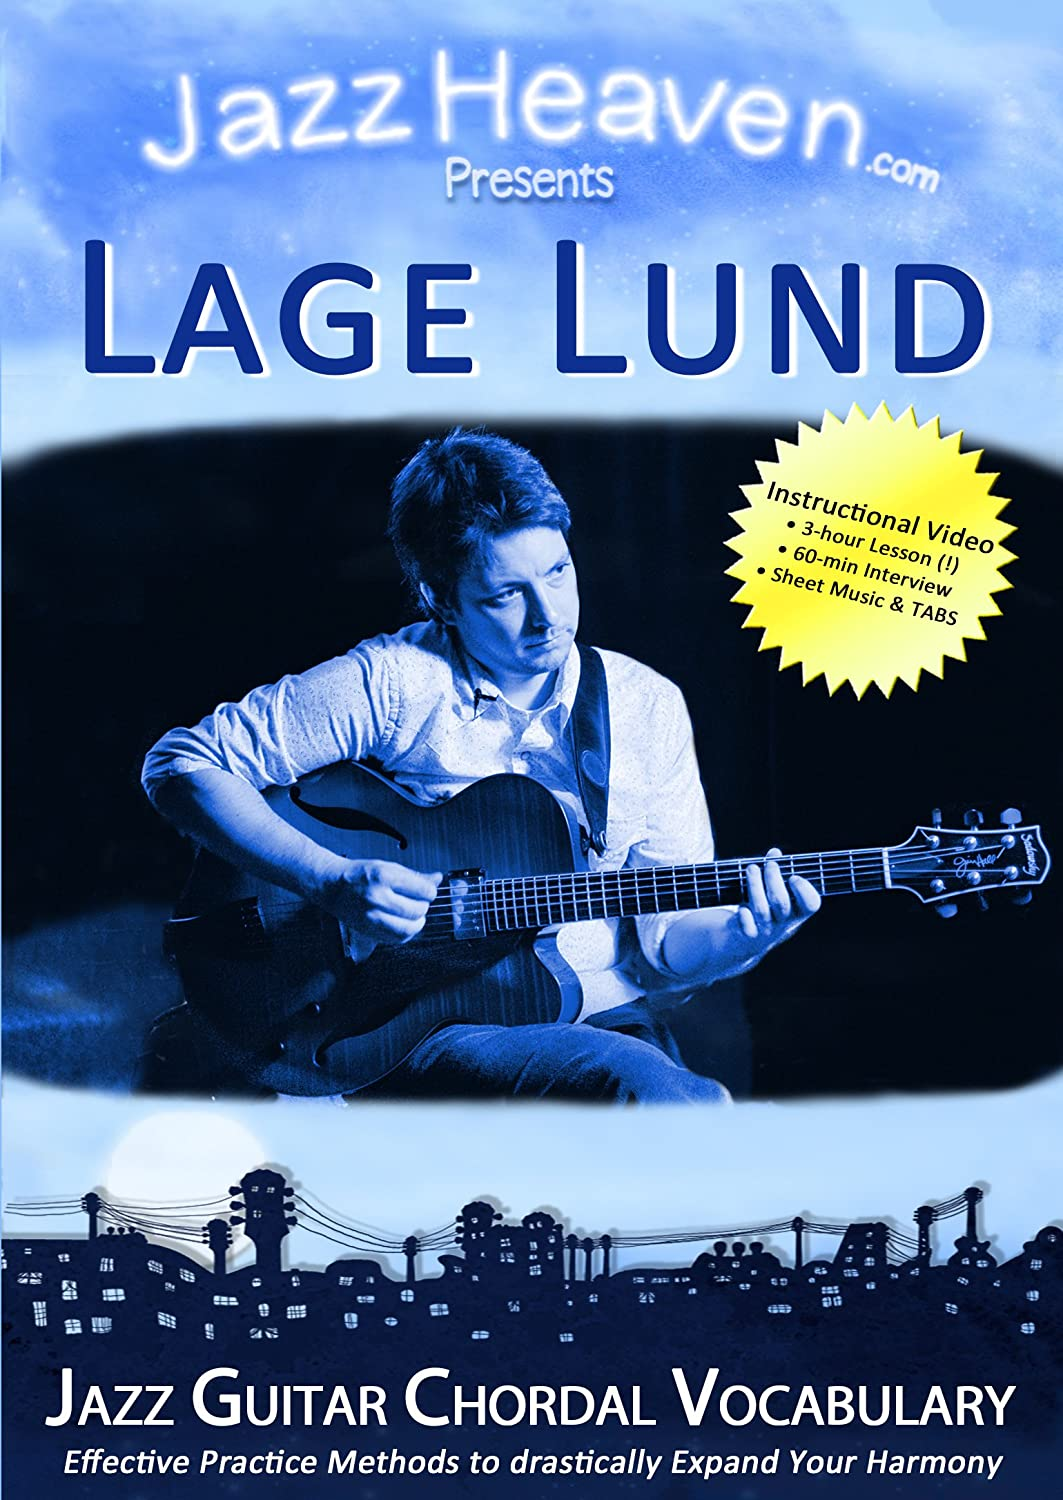 Jazz Guitar Chords DVD Lage Lund Jazz Guitar Chordal Vocabulary Harmony Improvisation Comping Method Learn Video Lessons